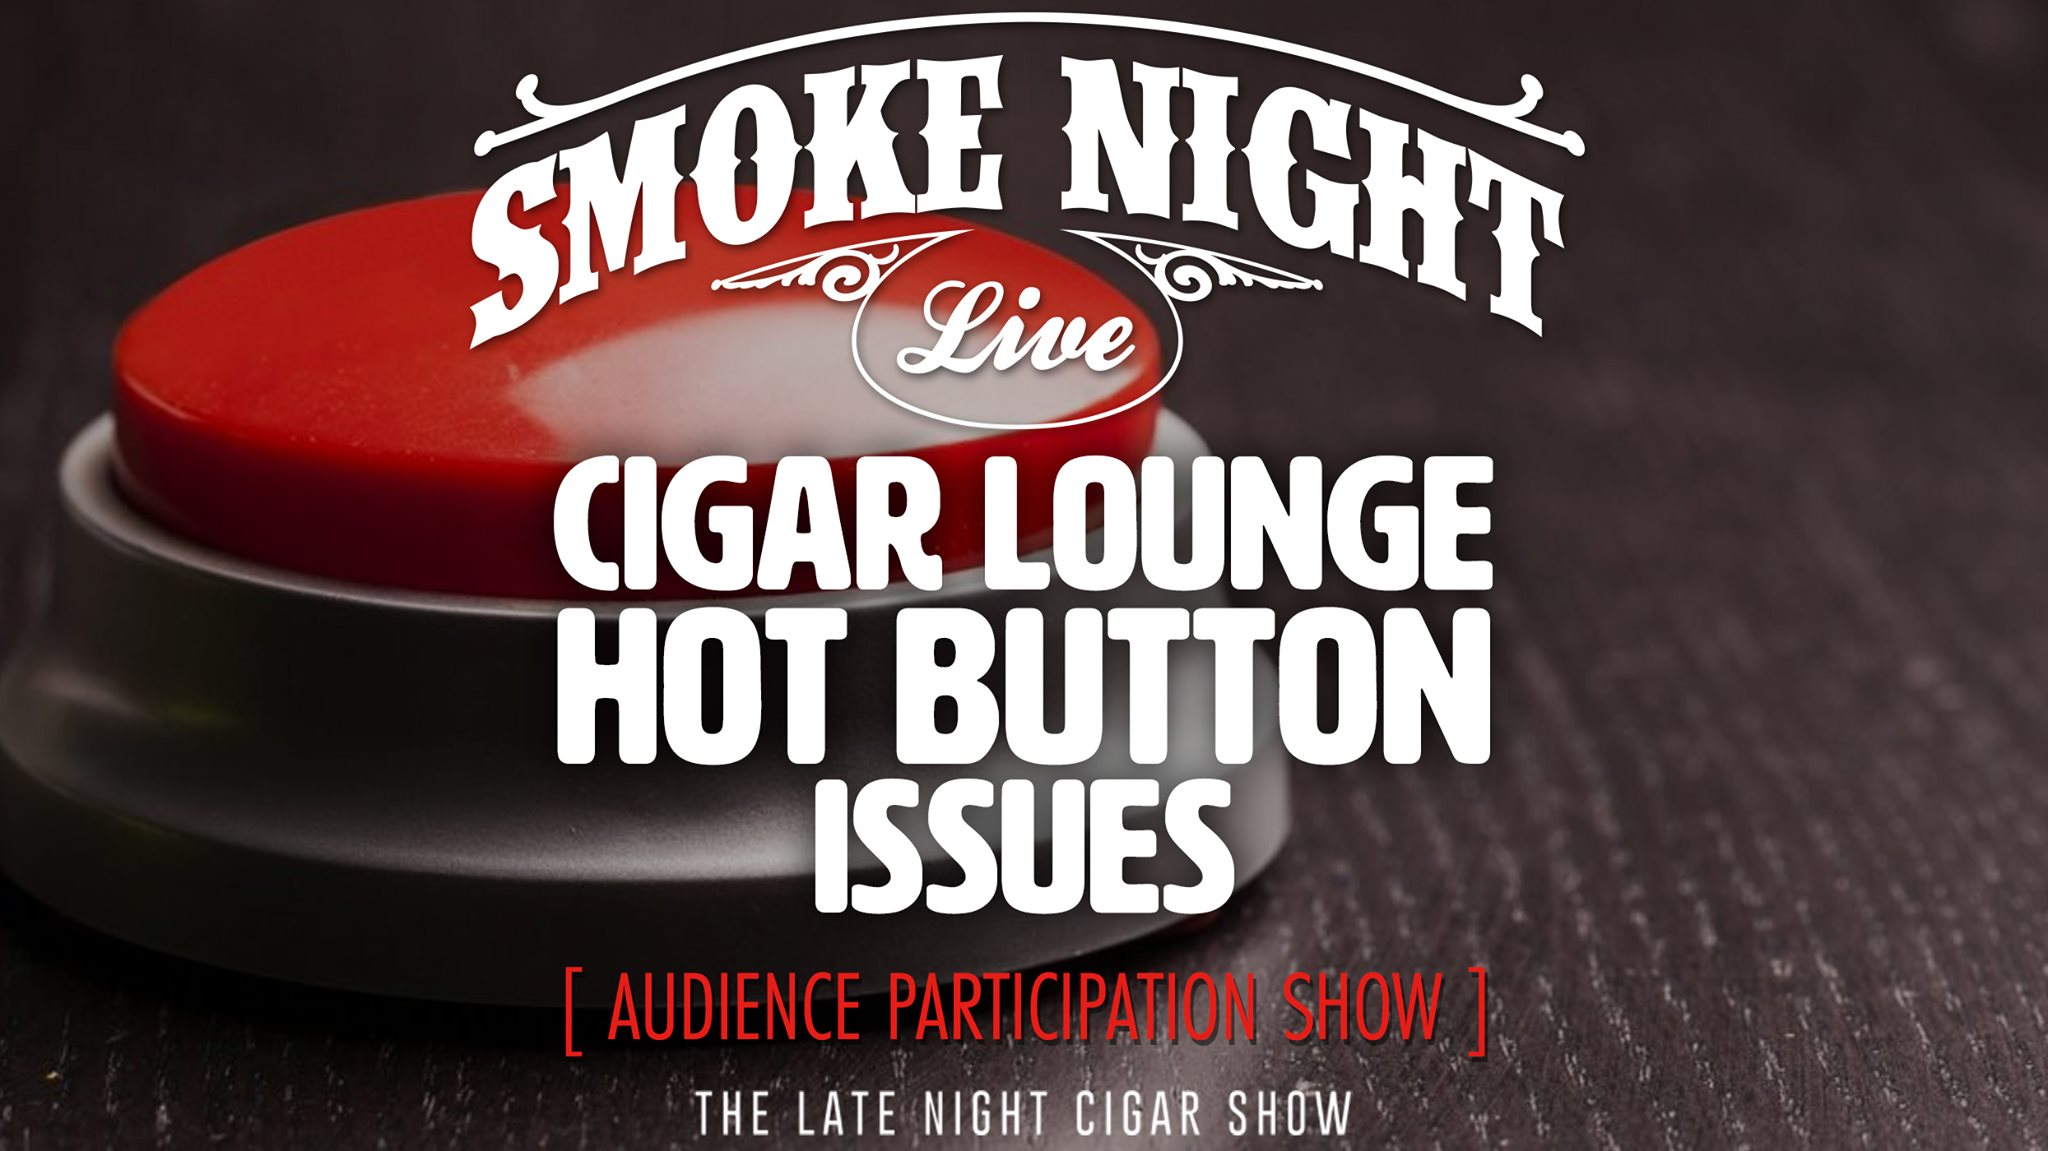 The Blog: Will Cooper Guests on September 10th Edition of Smoke Night Live